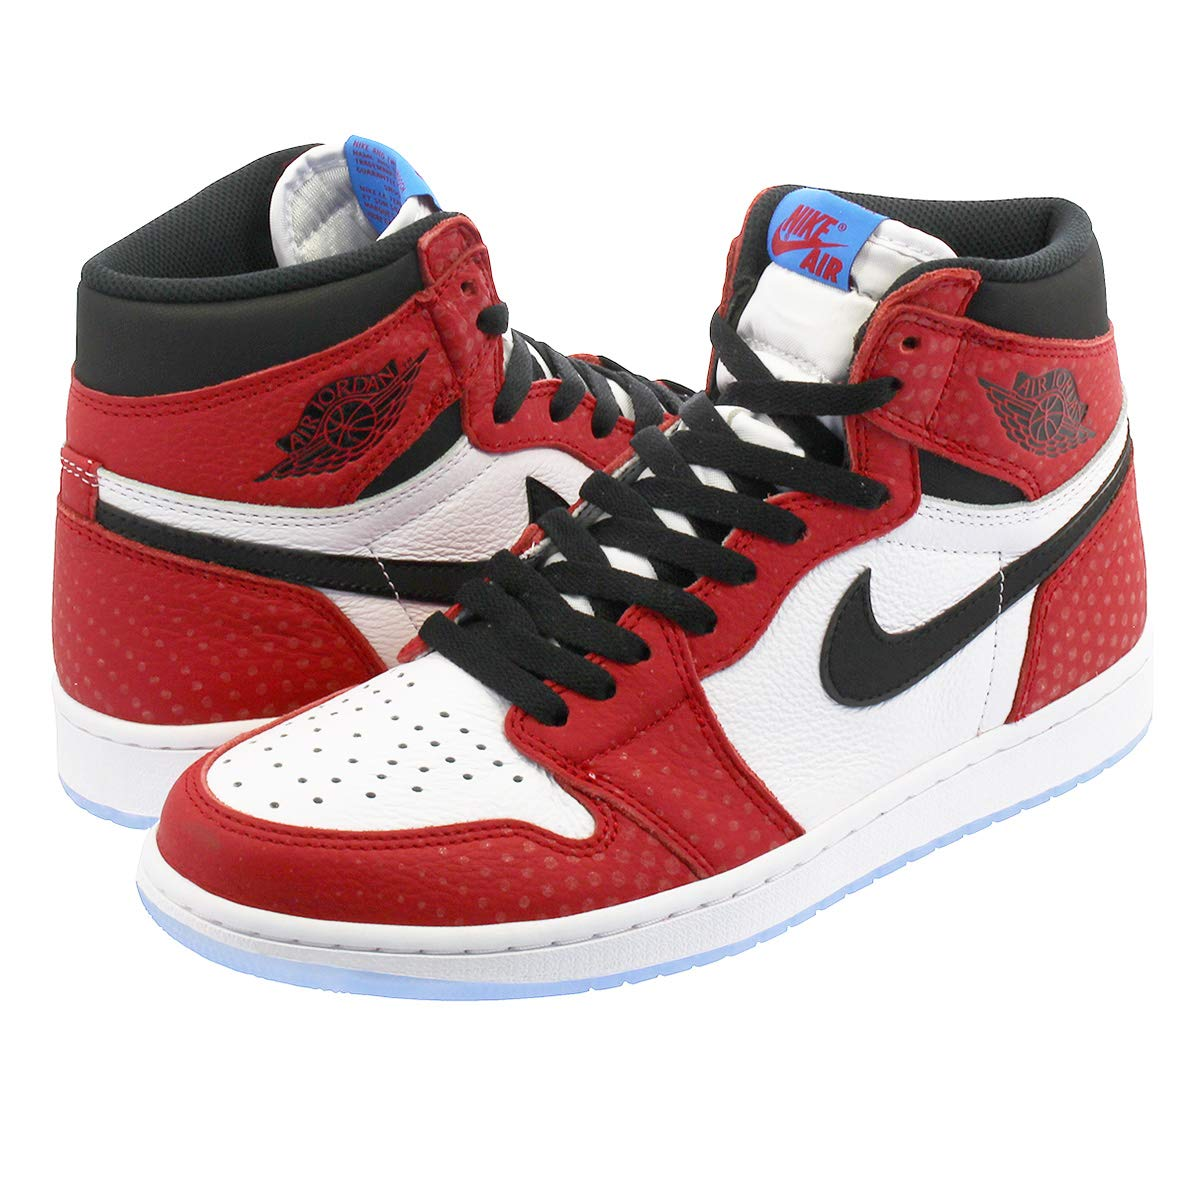 [ナイキ] AIR JORDAN 1 RETRO HIGH OG GYM 赤/白い/PHOTO 青/黒 【ORIGIN STORY】【SPIDERMAN】 [並行輸入品]  29.0 cm